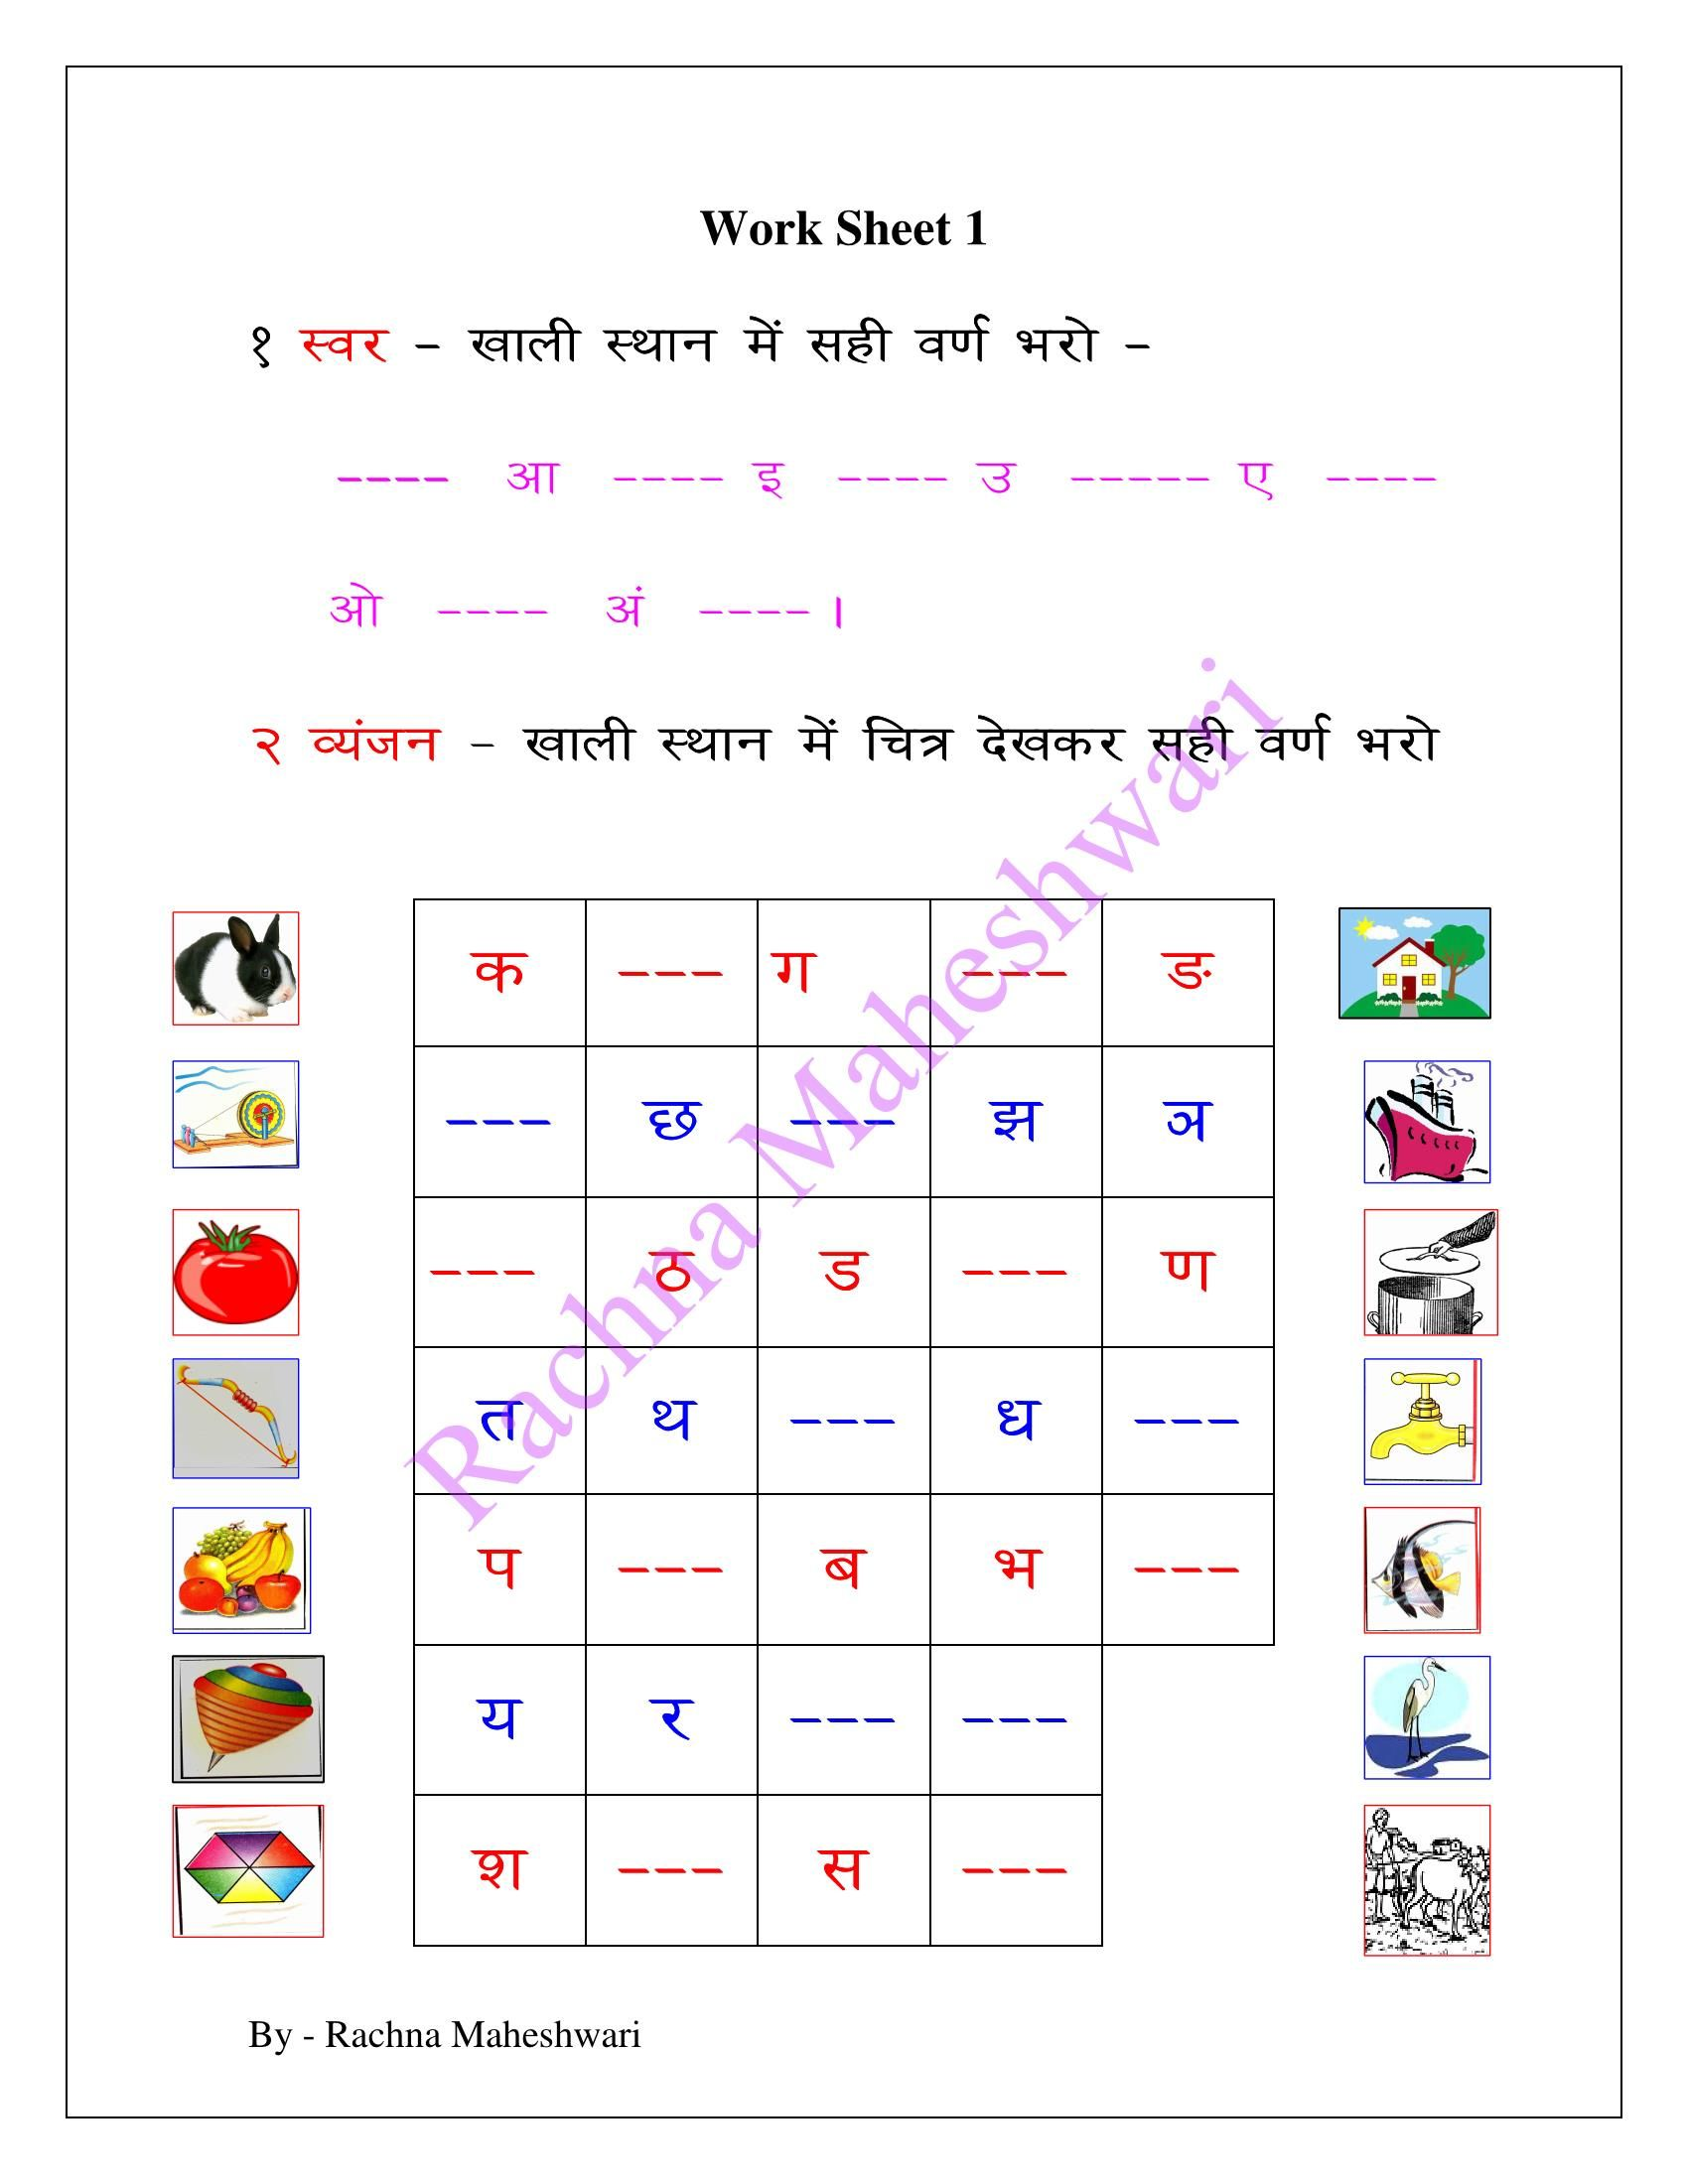 hight resolution of स्वर व्यंजन (6 Work Sheets- Easy to follow)   Hindi worksheets